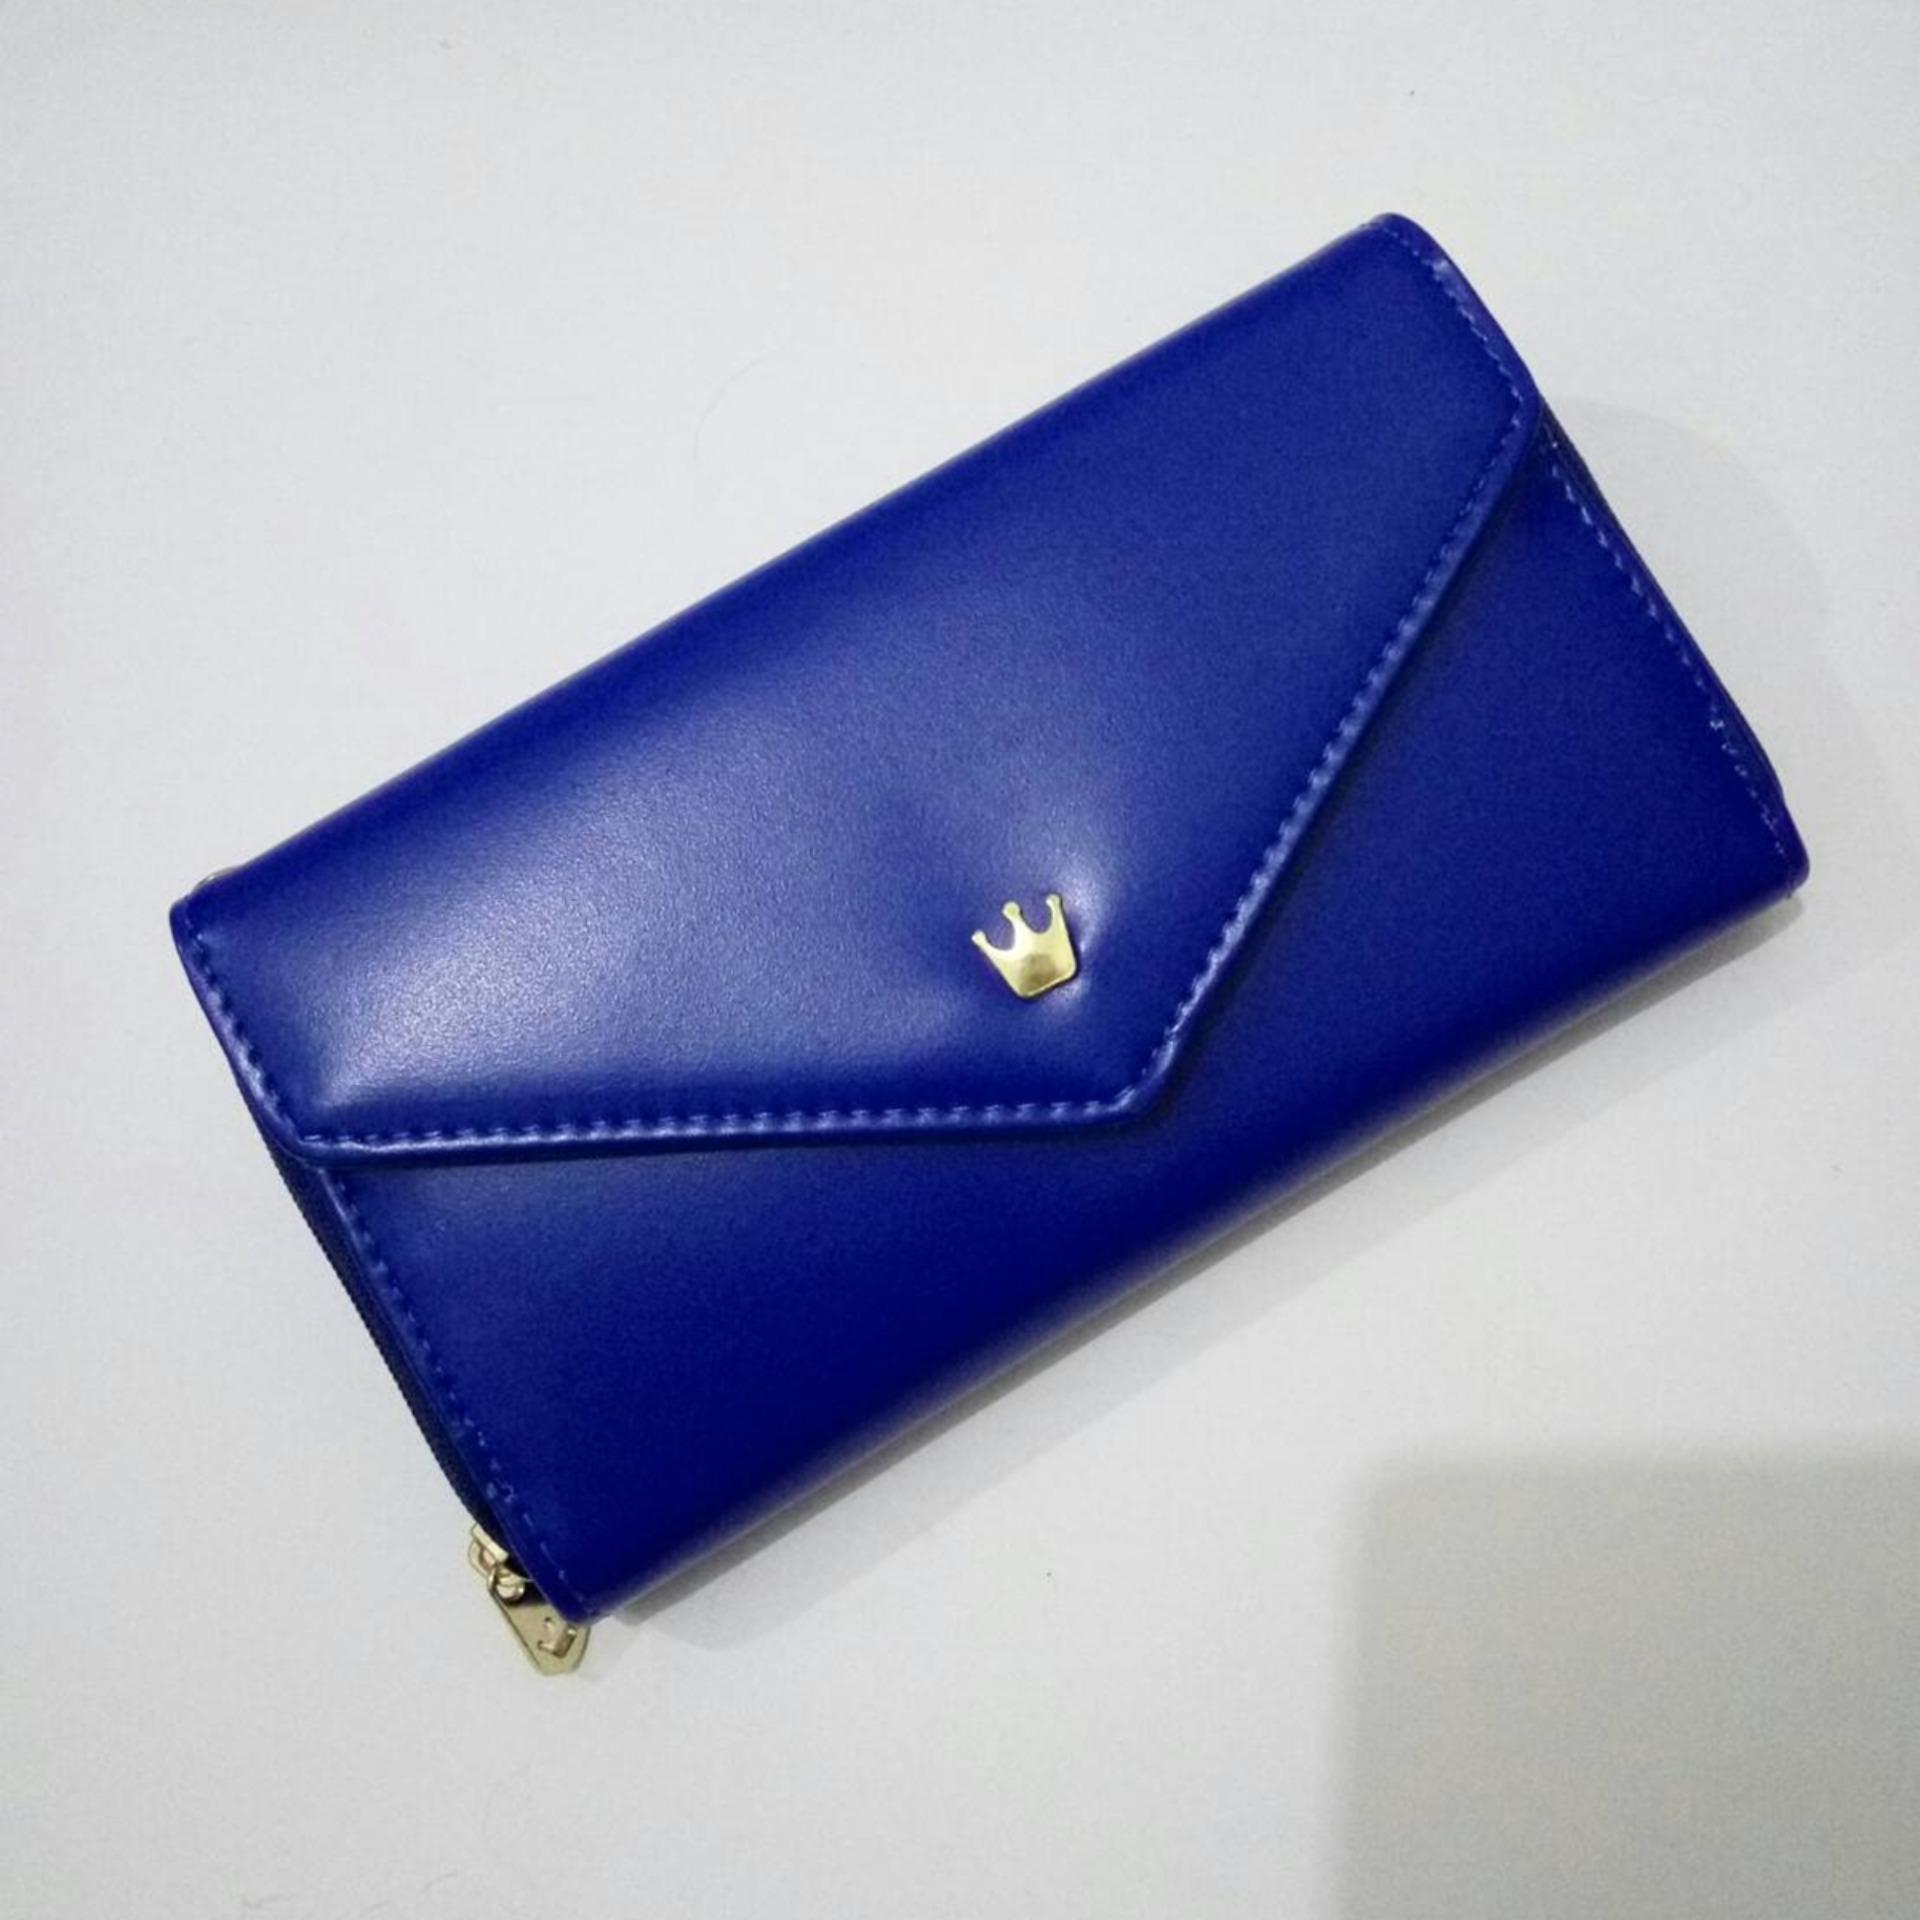 Harga Jims Honey Dompet Fashion Queenie Wallet Navy Asli